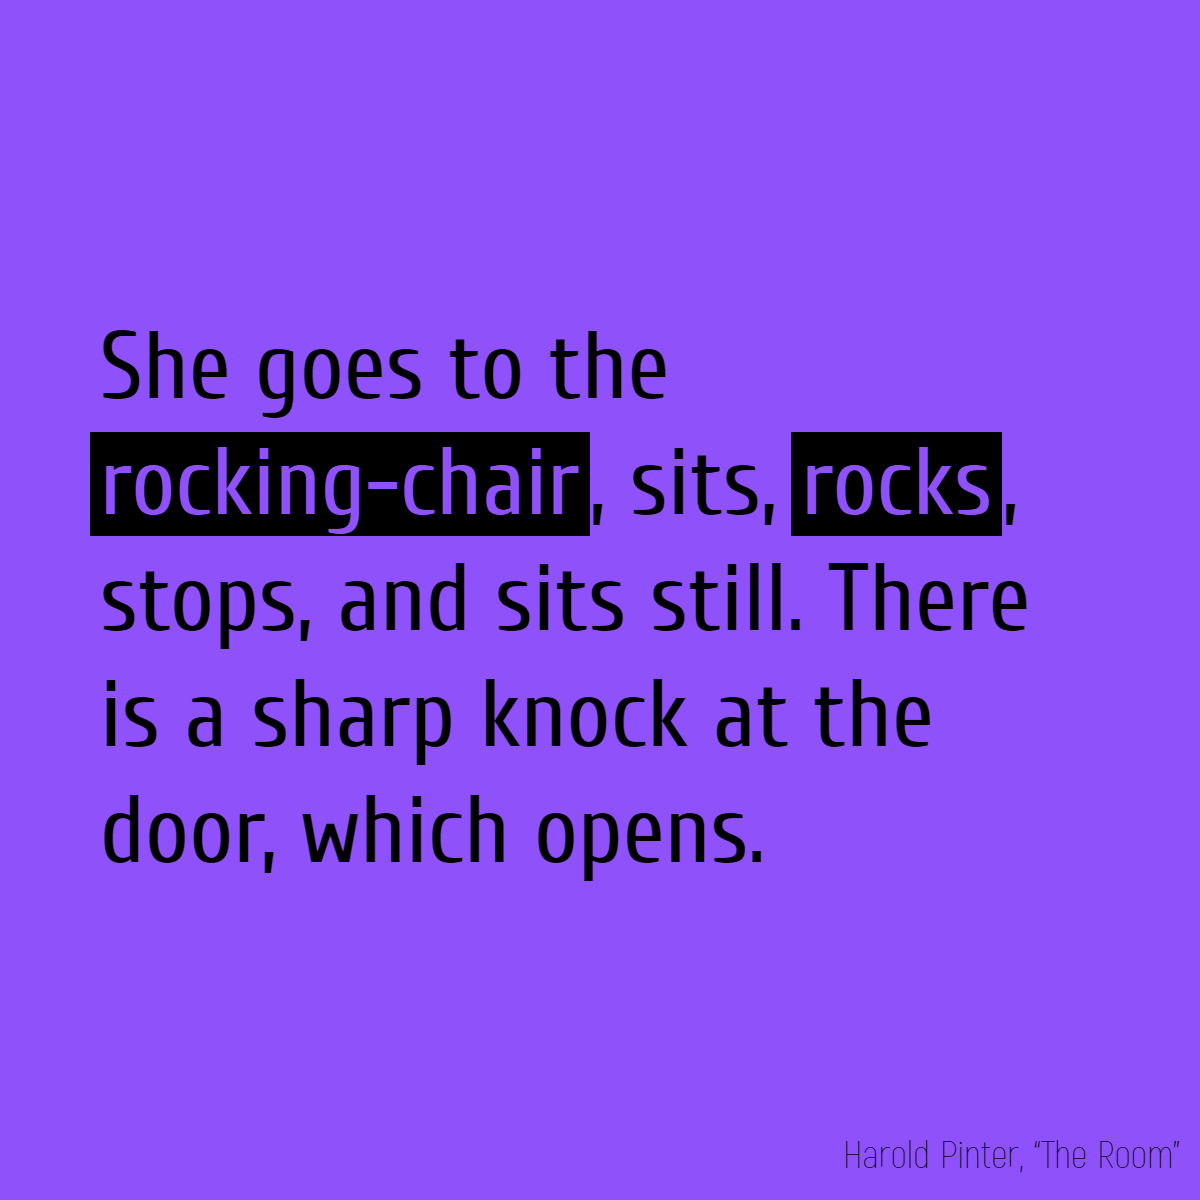 She goes to the rocking-chair, sits, rocks, stops, and sits still. There is a sharp knock at the door, which opens.